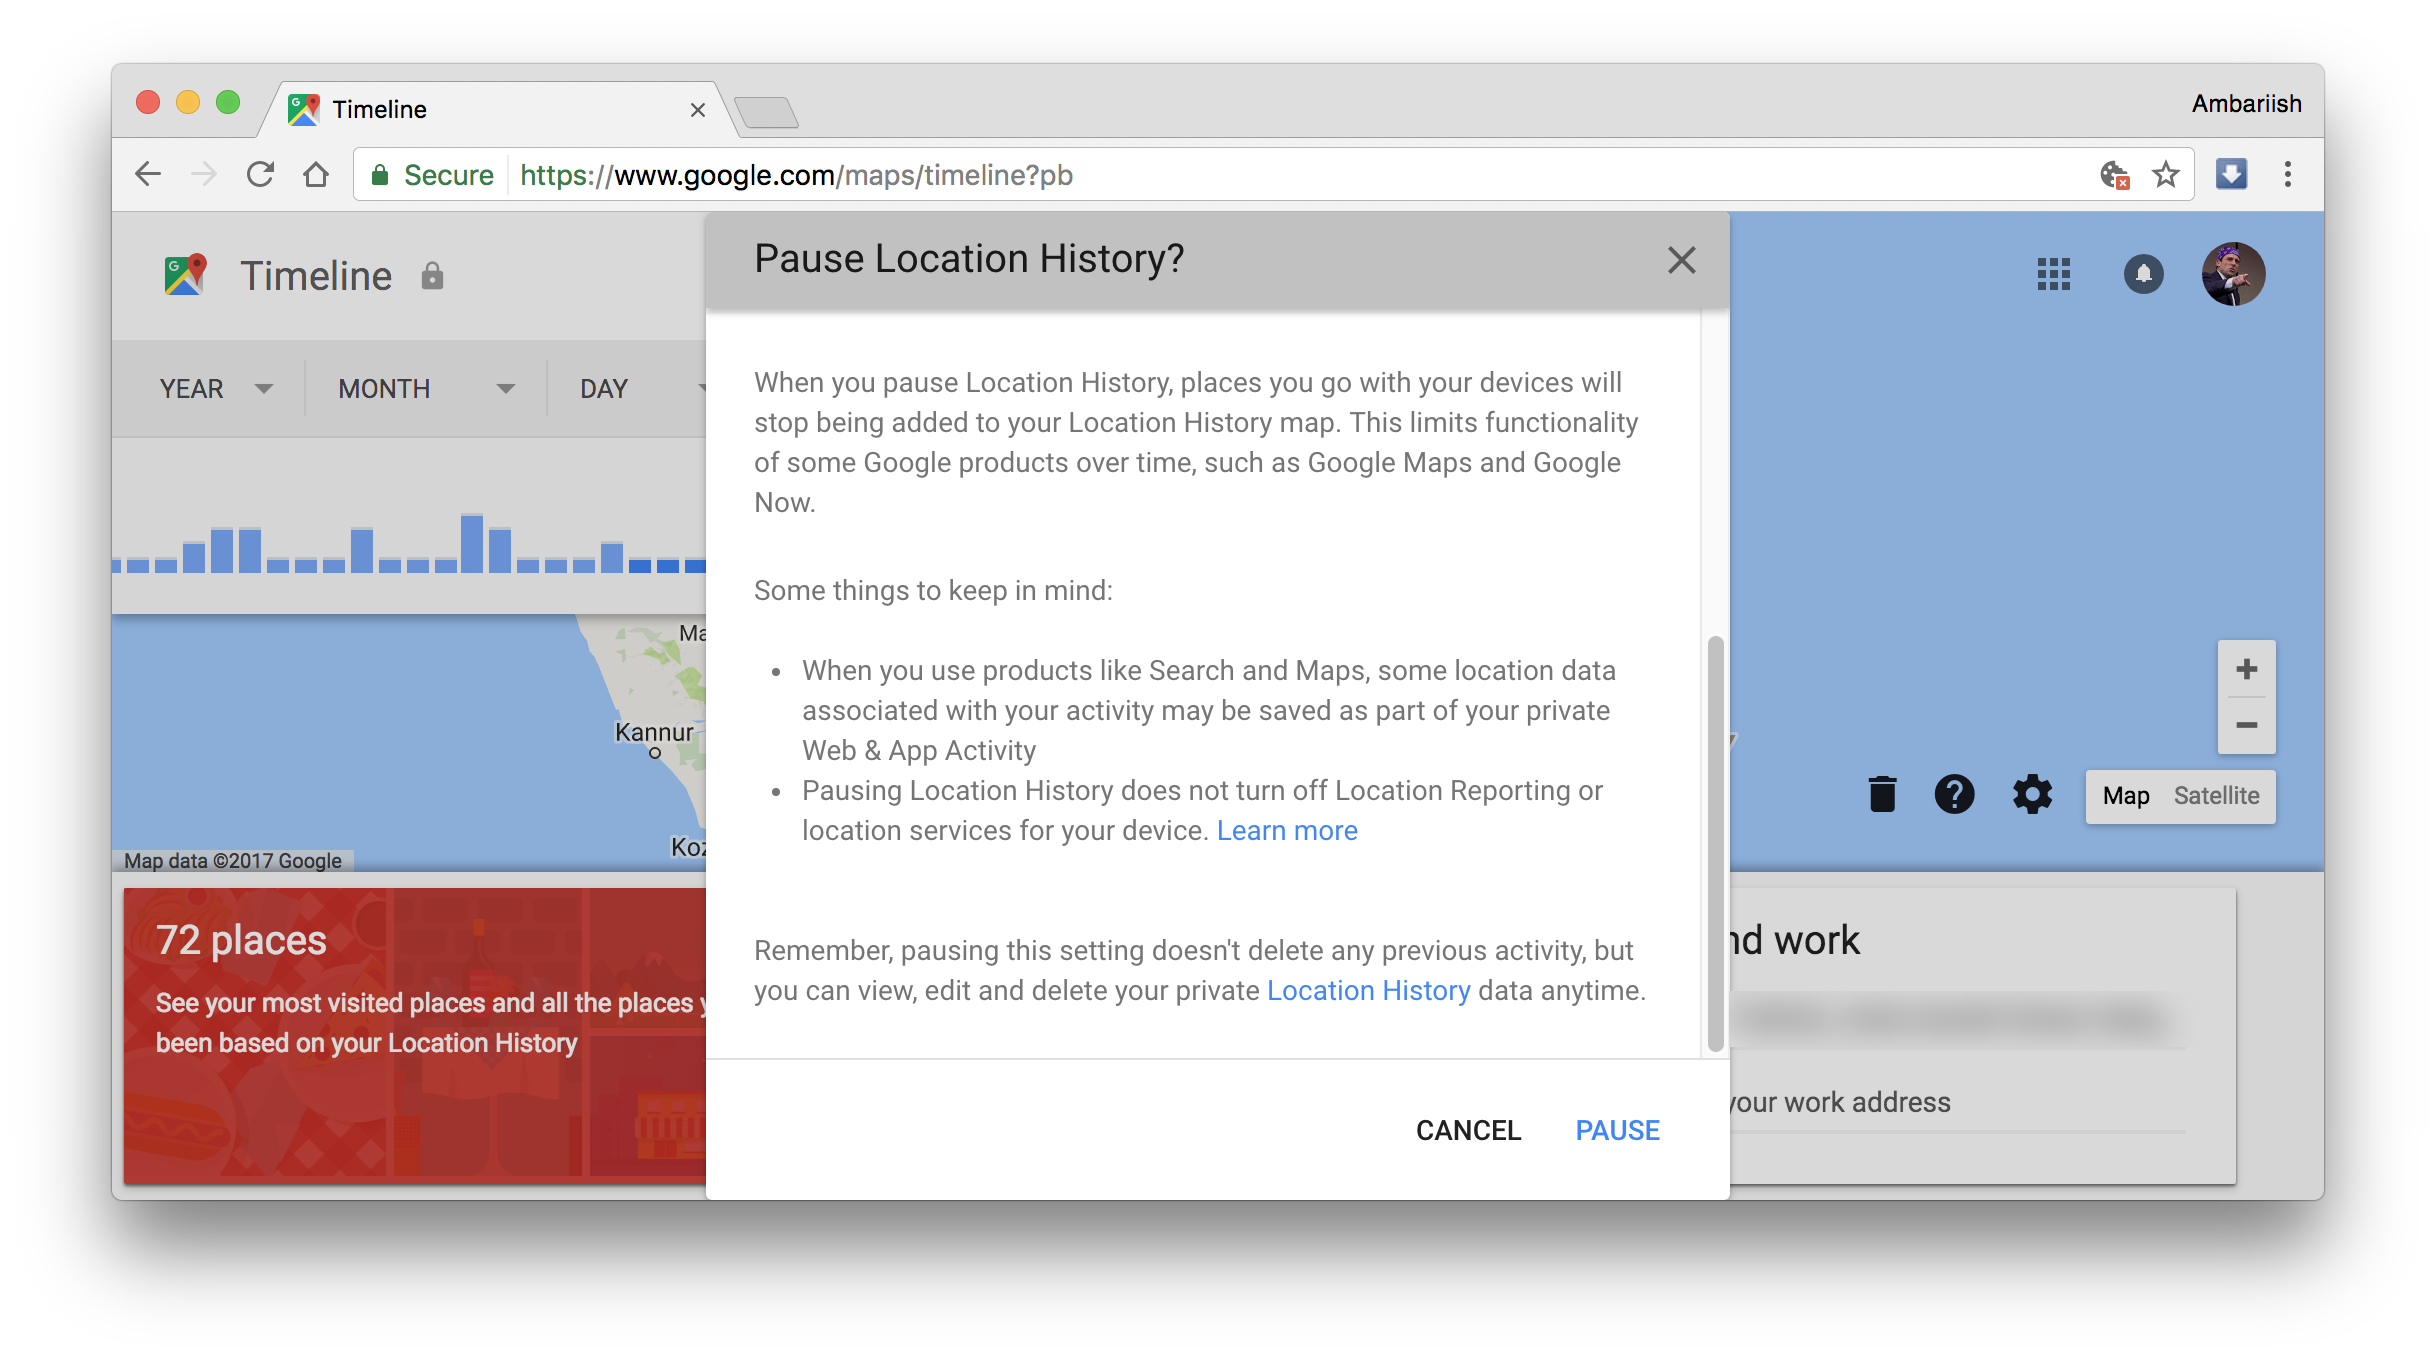 manage you location history